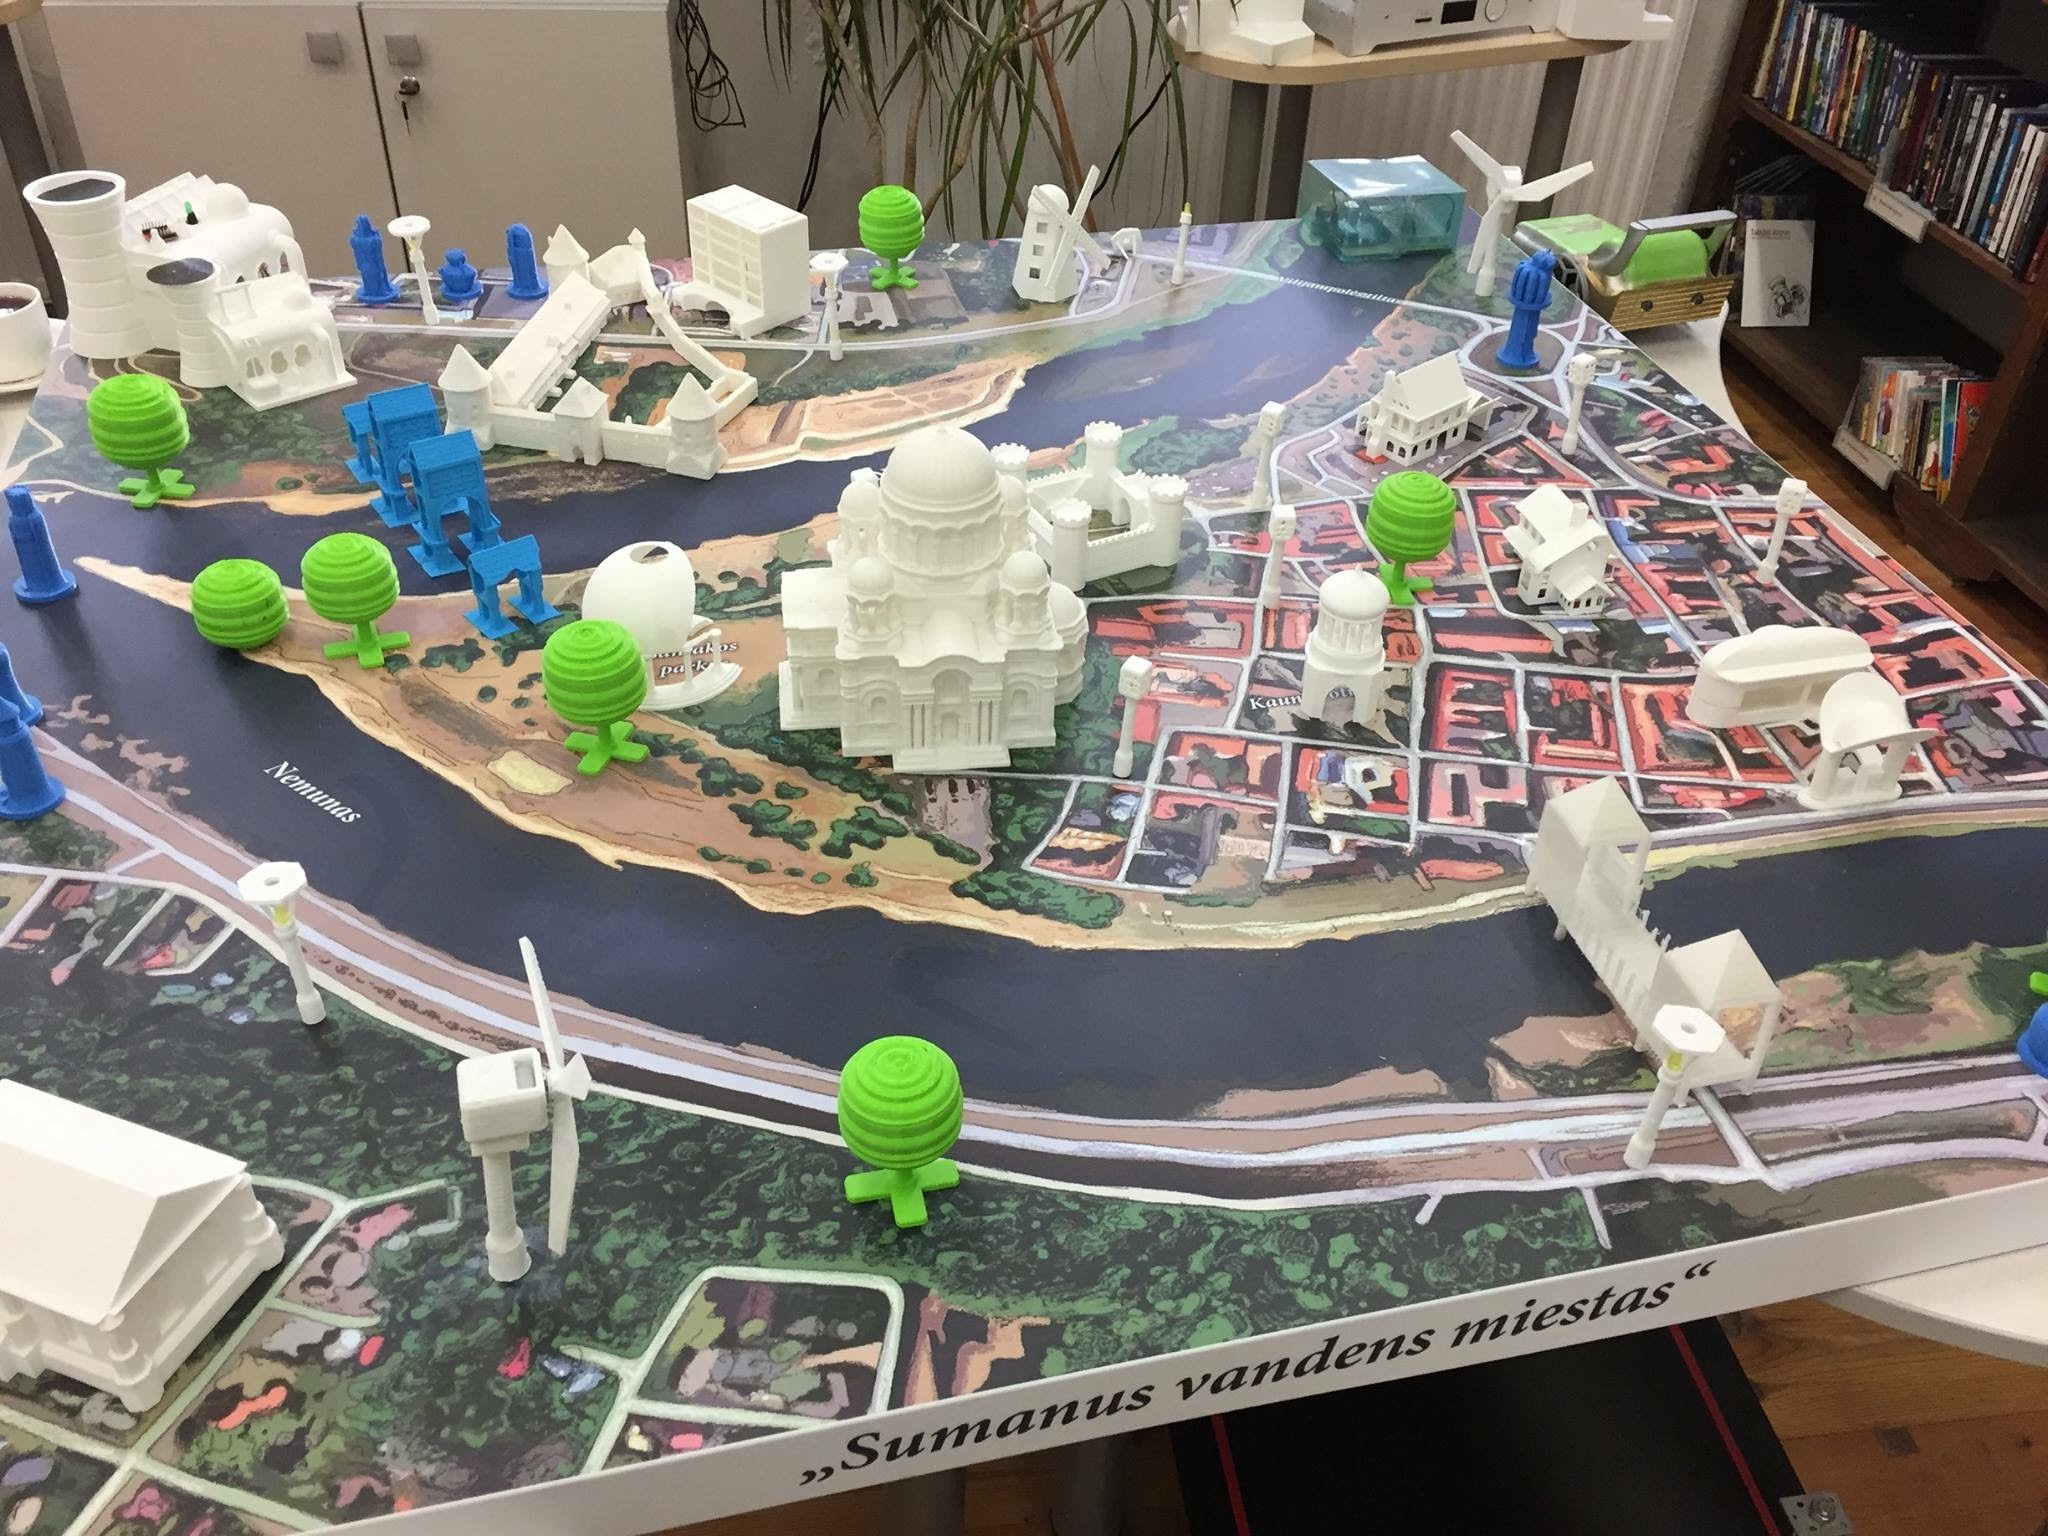 Discover Yourself in 3D City, a project from Kaunas Municipal